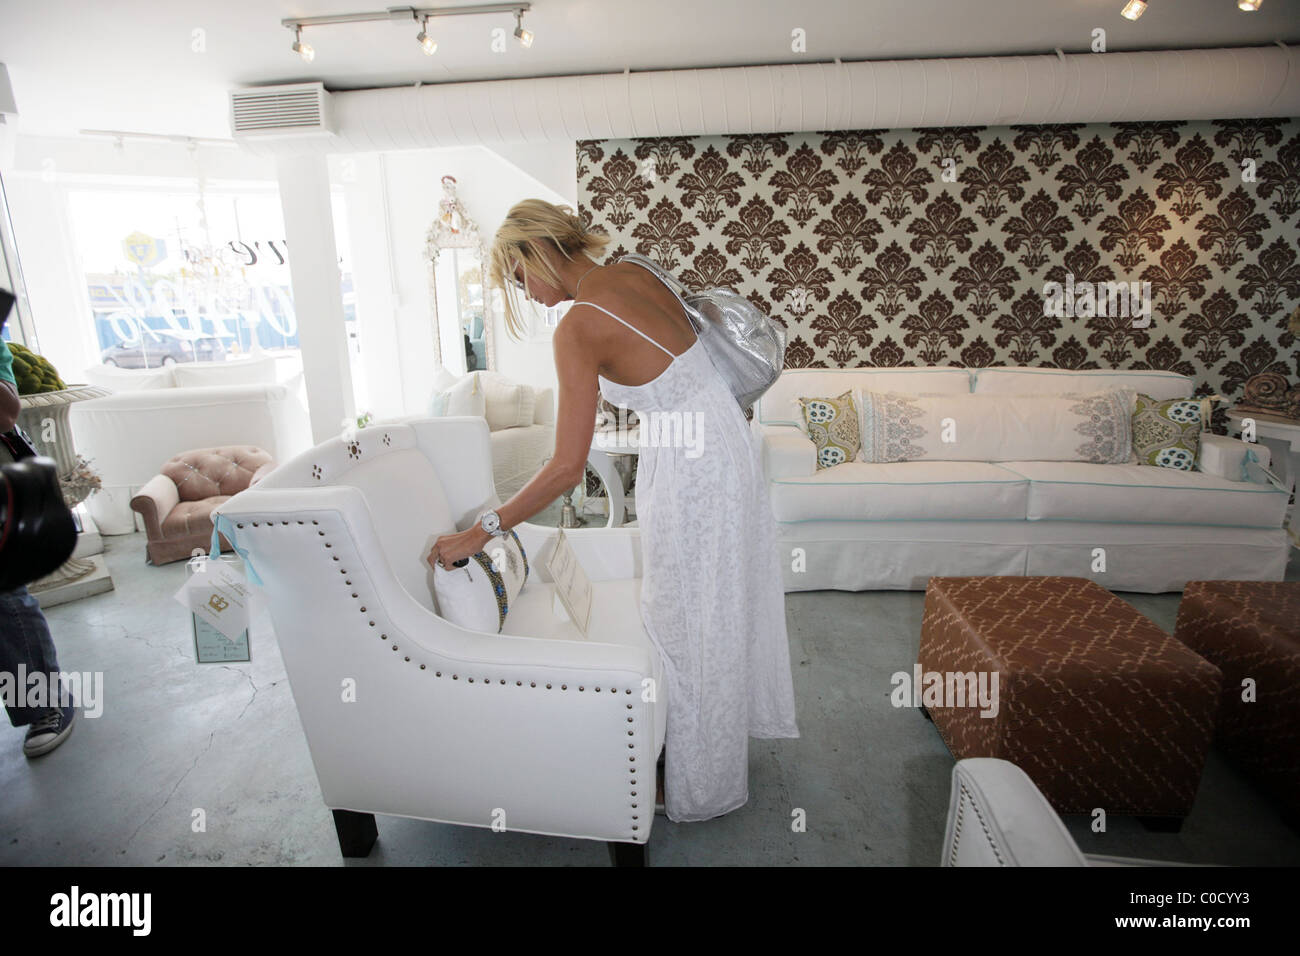 Paris Hilton Goes Furniture Shopping At Cozi Couch In Hollywood Los